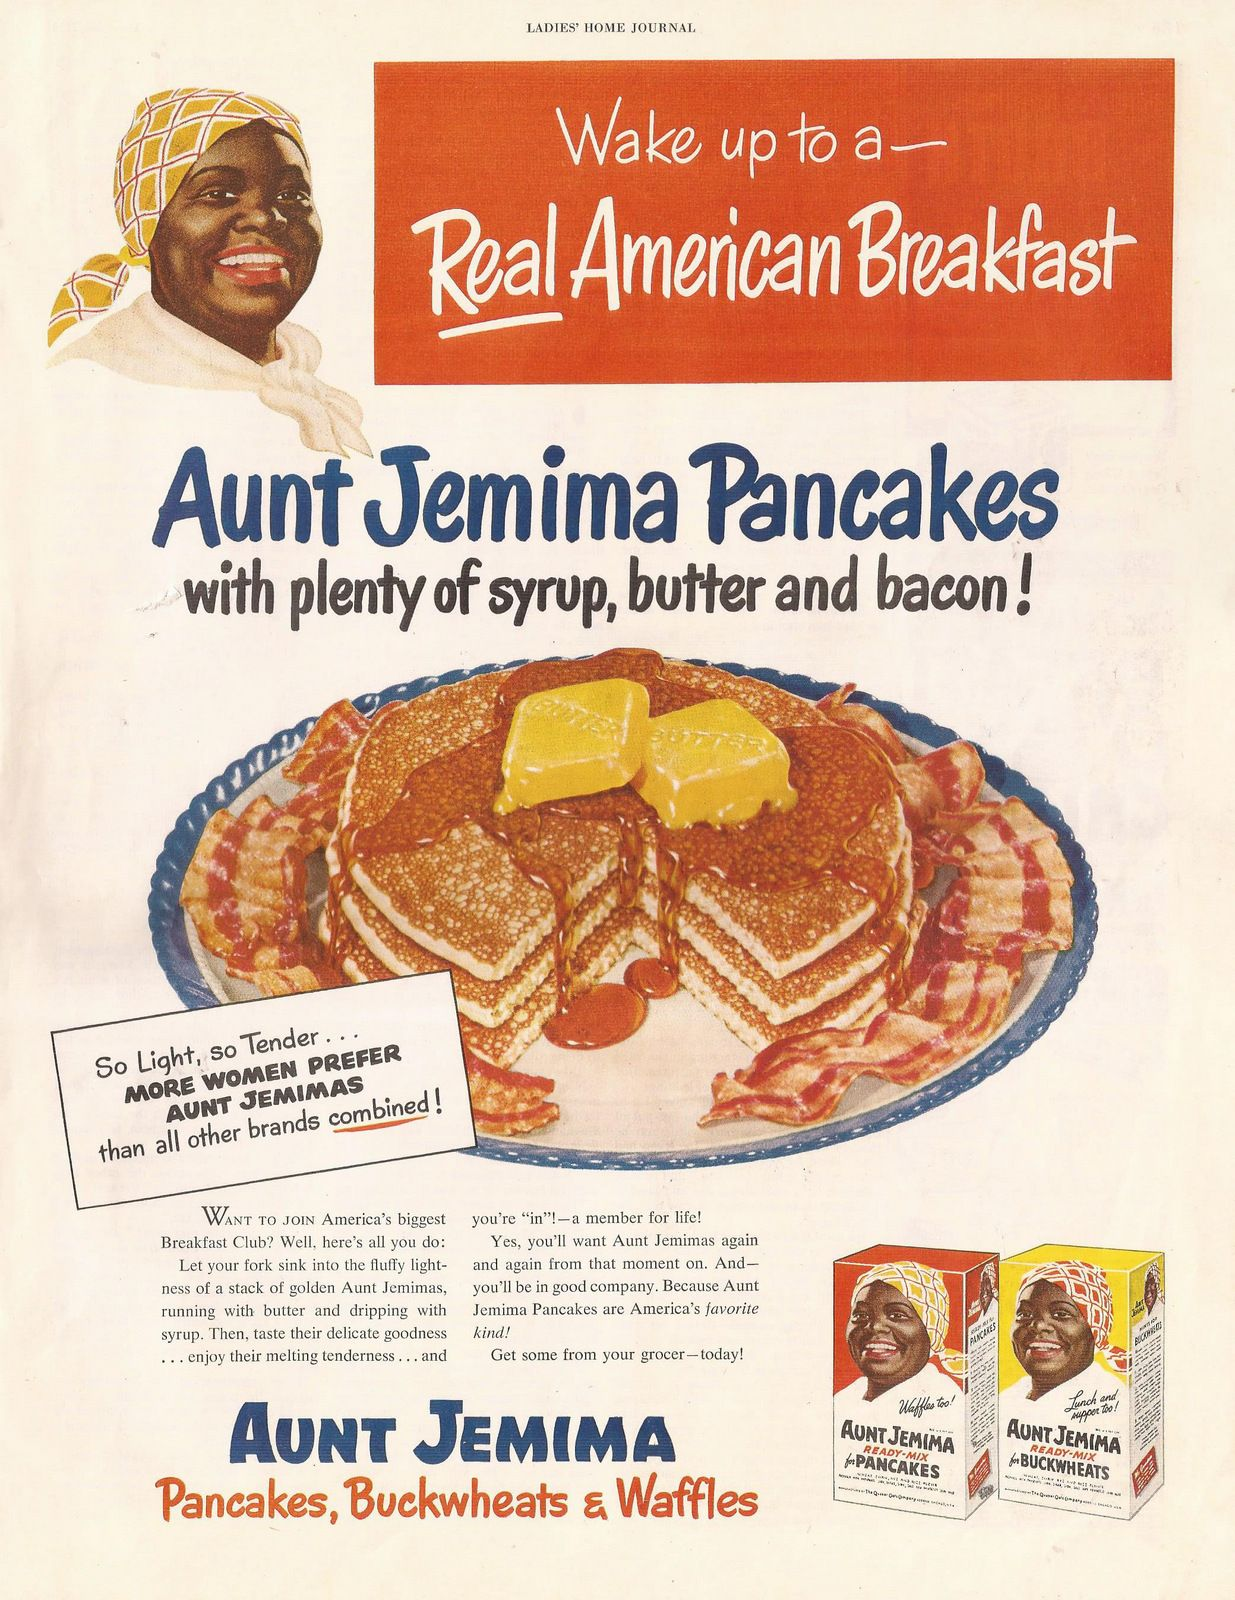 Aunt Jemima Kitchen Curtains Island With Drop Leaf Clearance Pancakes Ad From Ladies 39 Home Journal